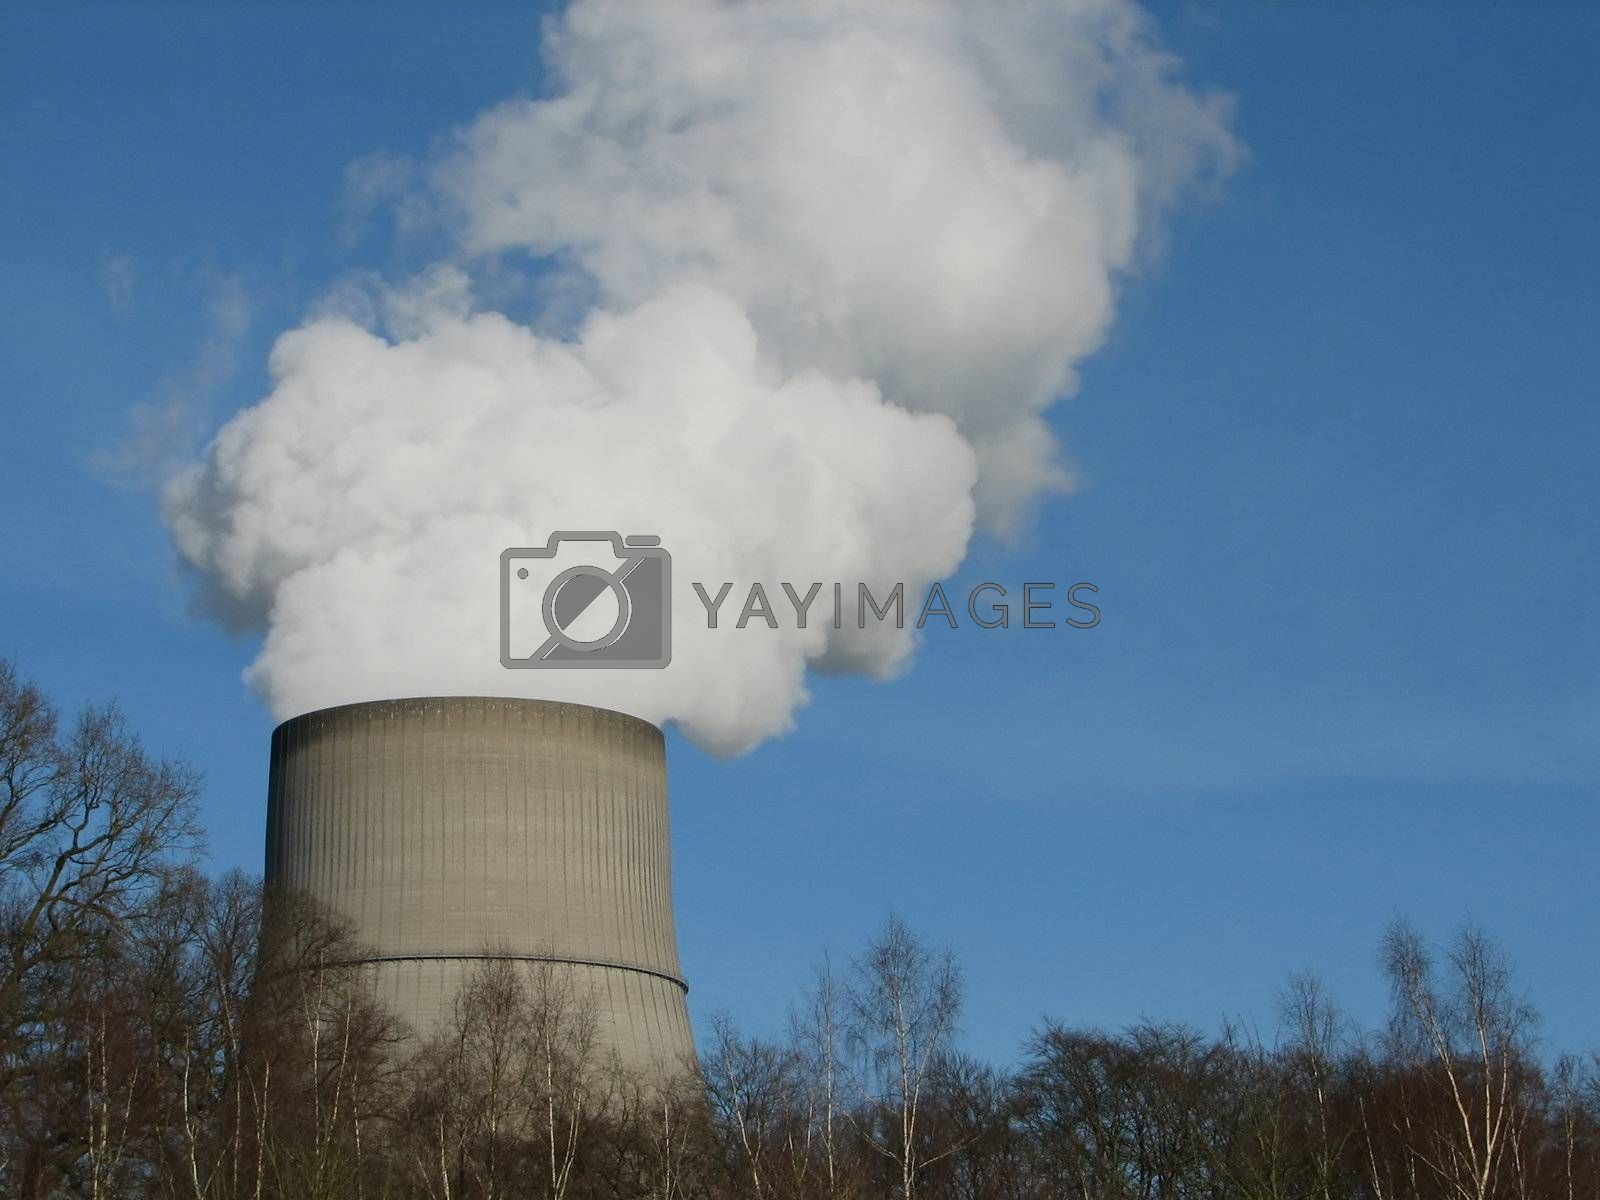 Chimneys, cooling towers, smoking, northern Germany, 2008